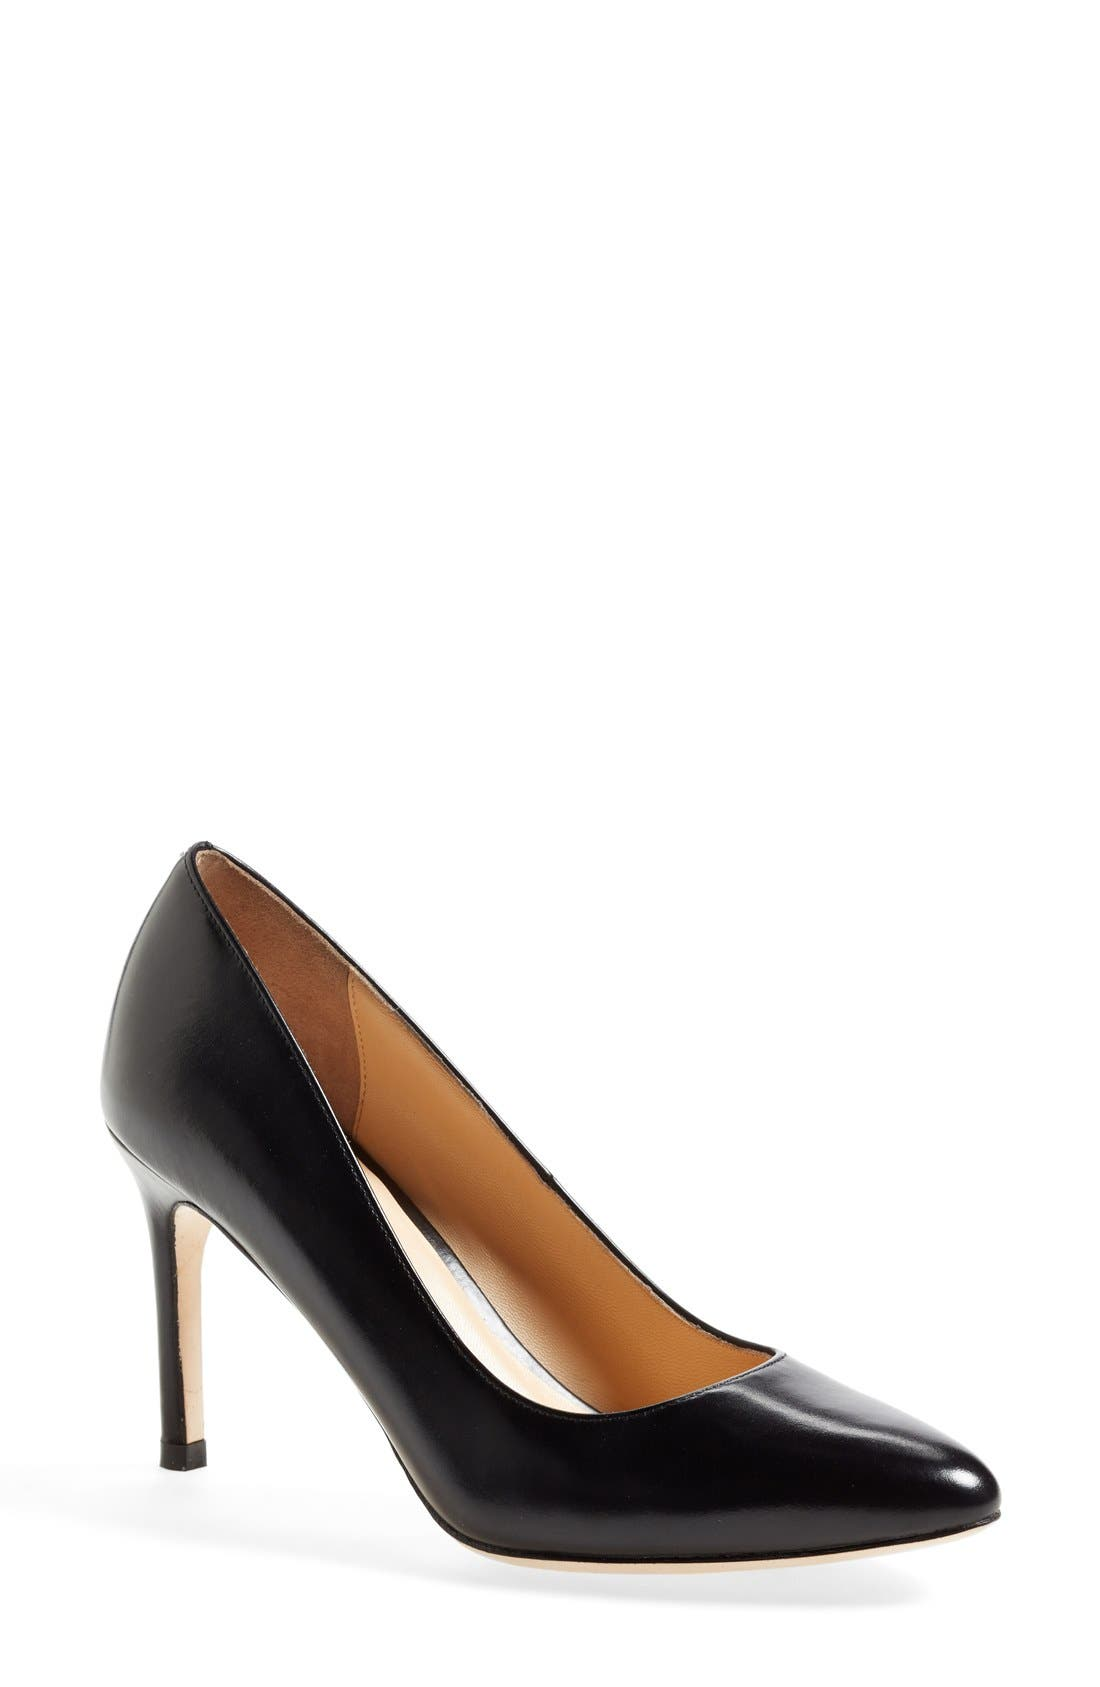 COLE HAAN,                             'Bethany' Leather Pump,                             Main thumbnail 1, color,                             001